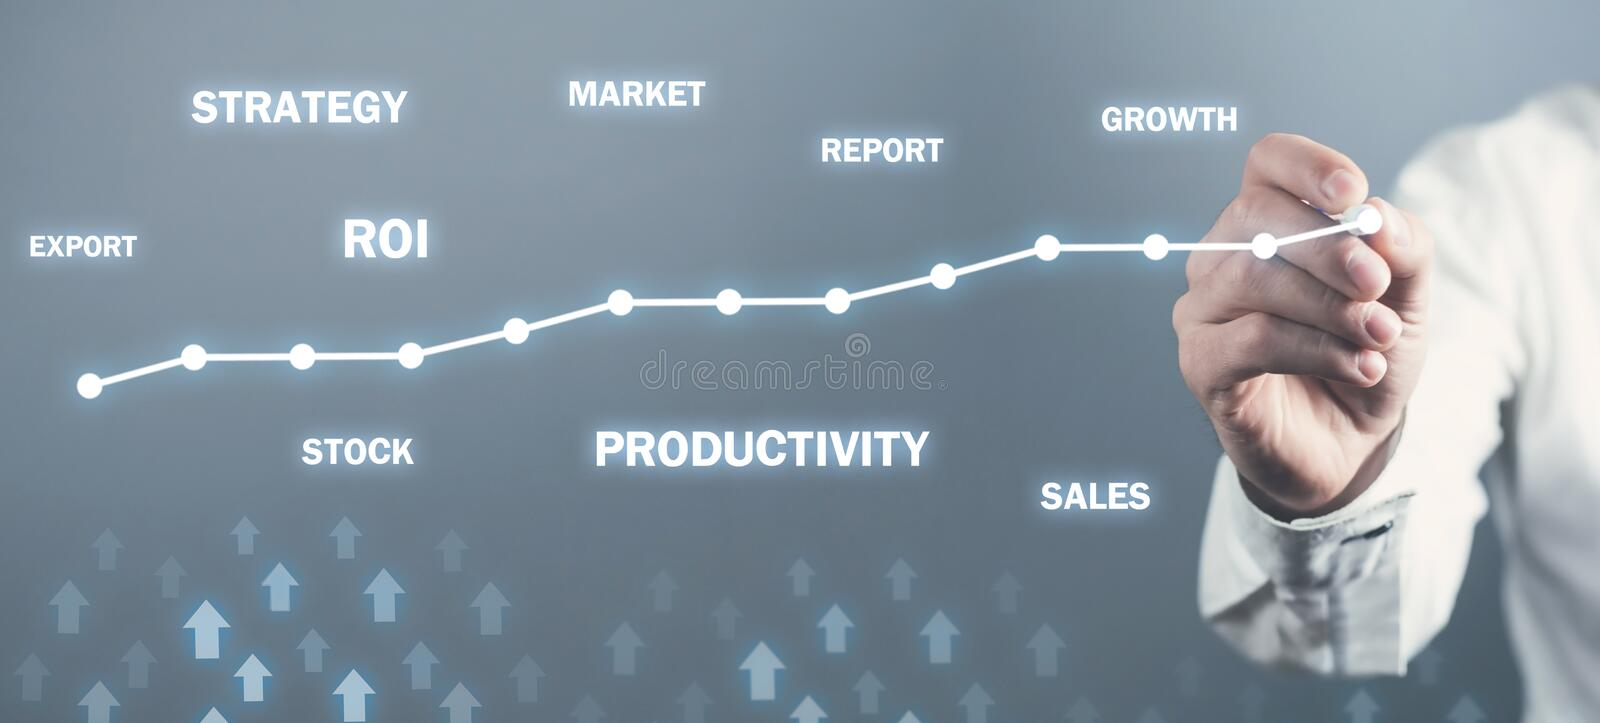 Business growth graph. Development, Success. Business concept royalty free stock images